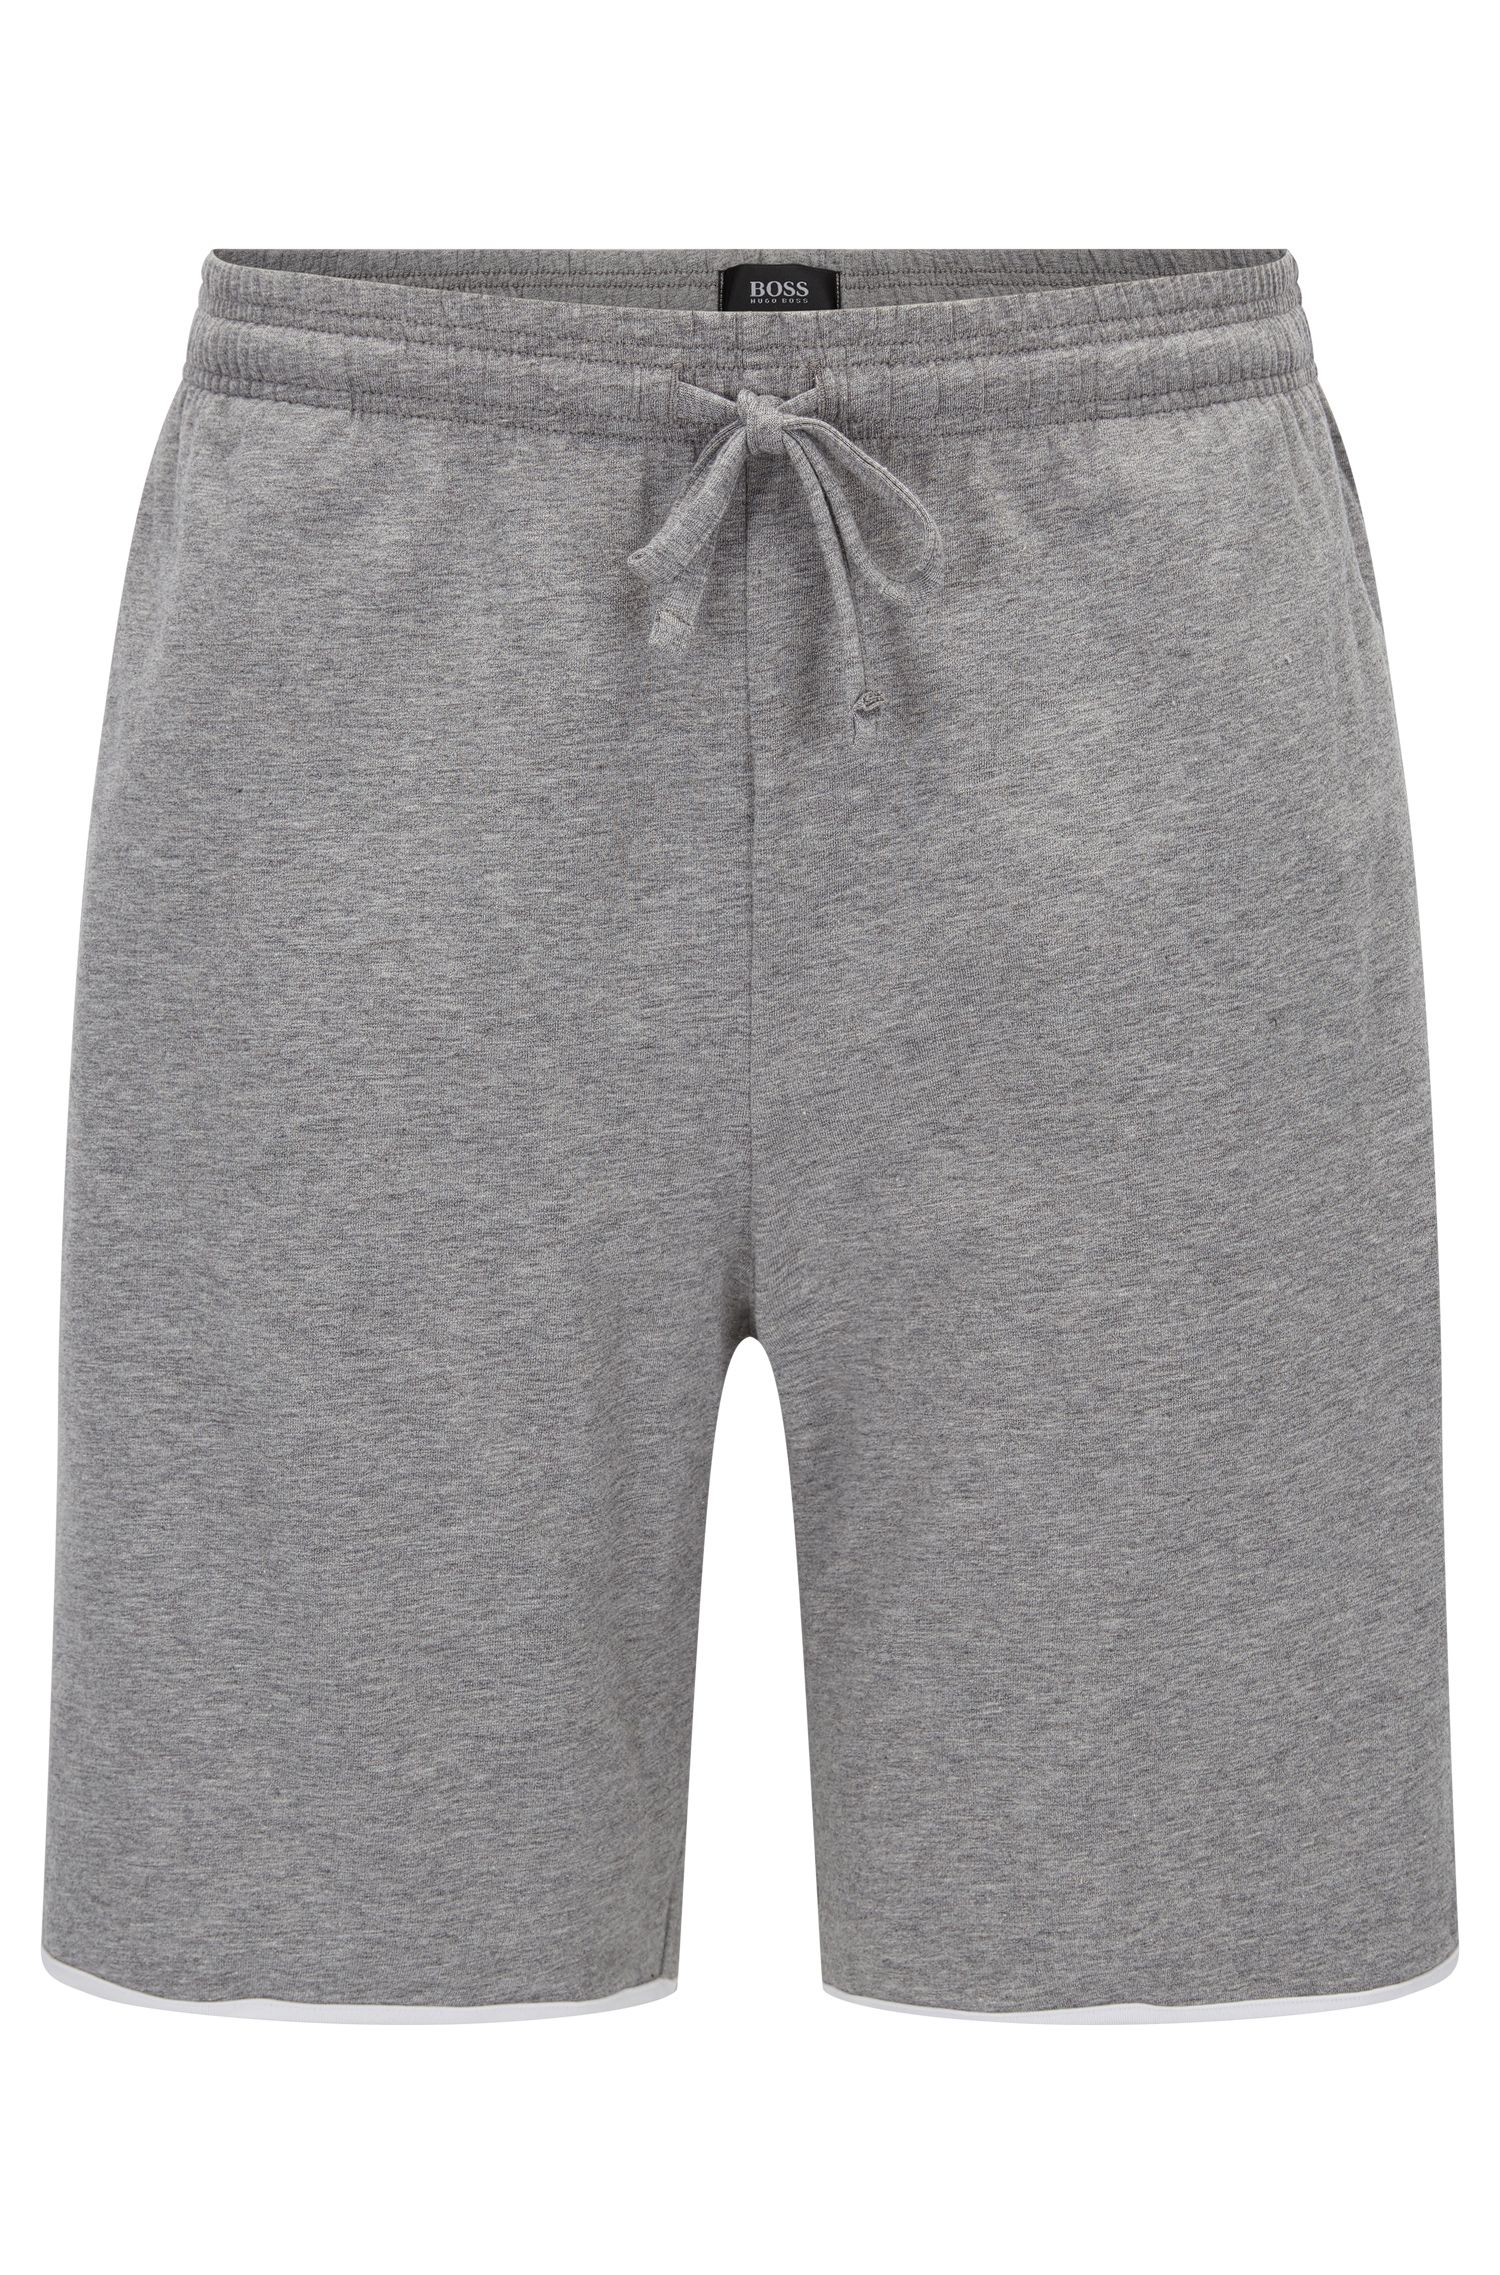 Jersey pyjama bottoms with contrast piping